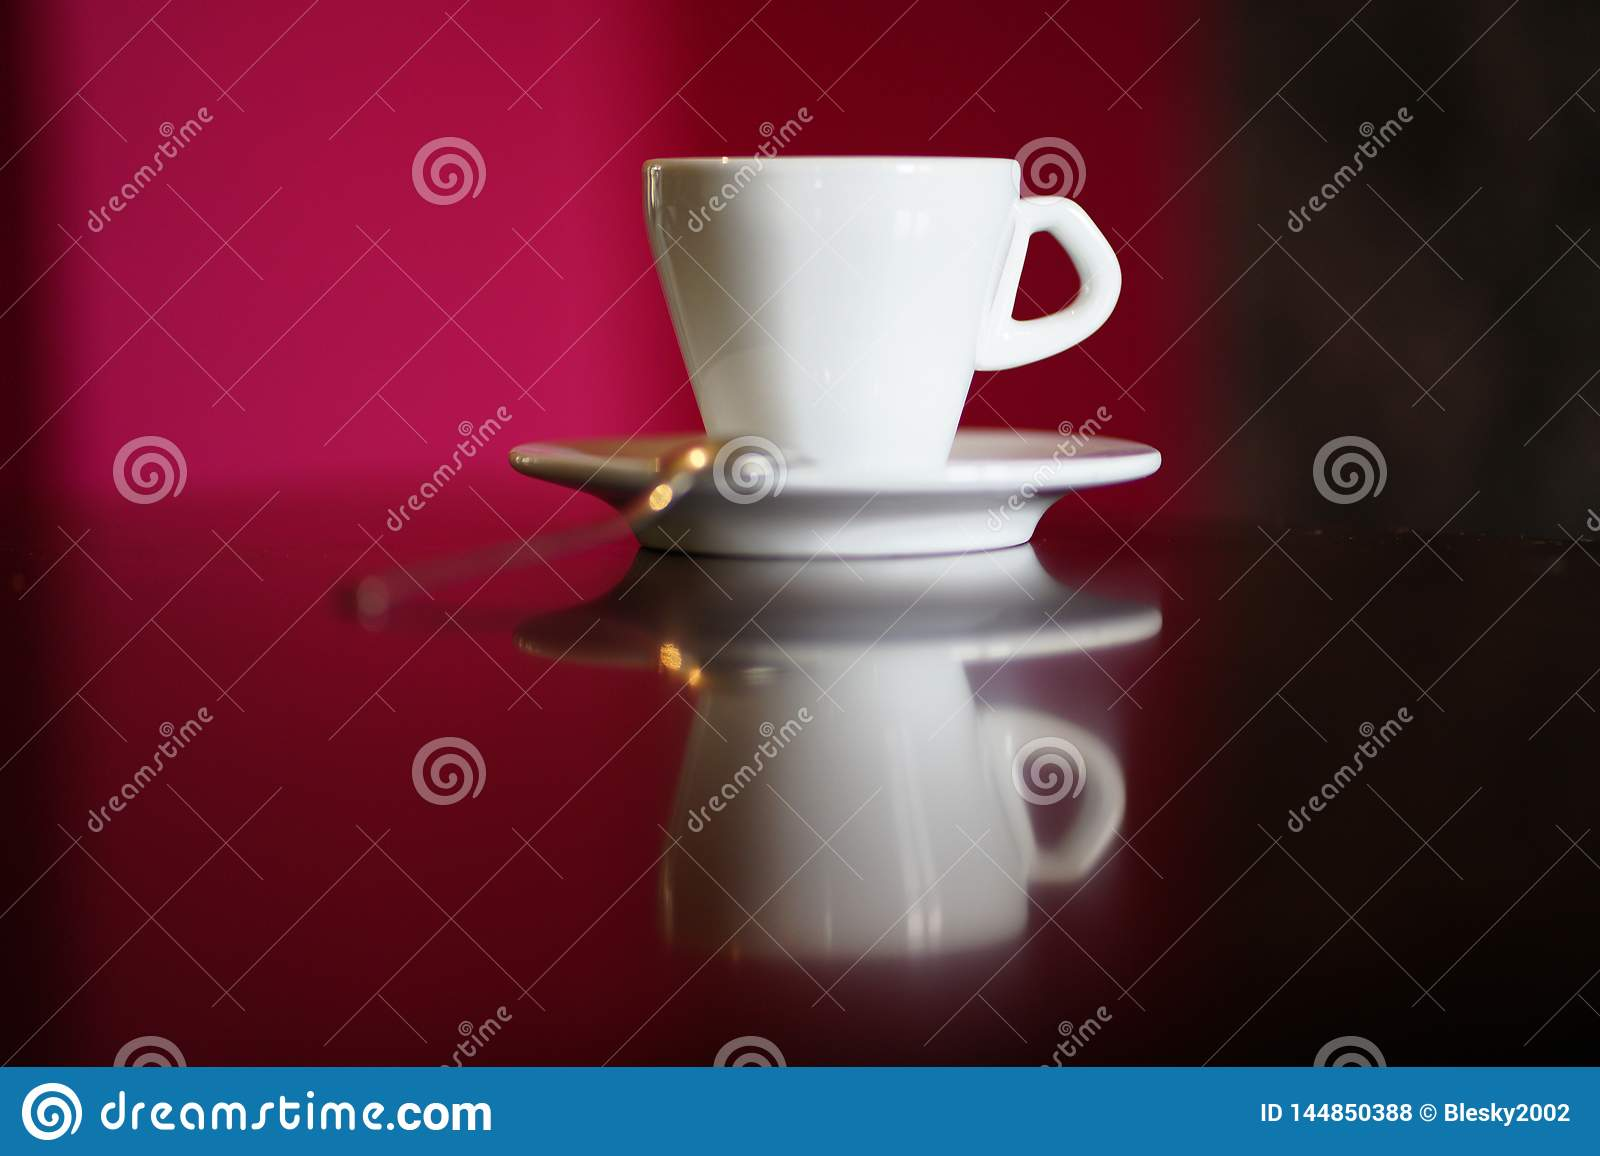 Isolated white coffee cup with plate and spoon